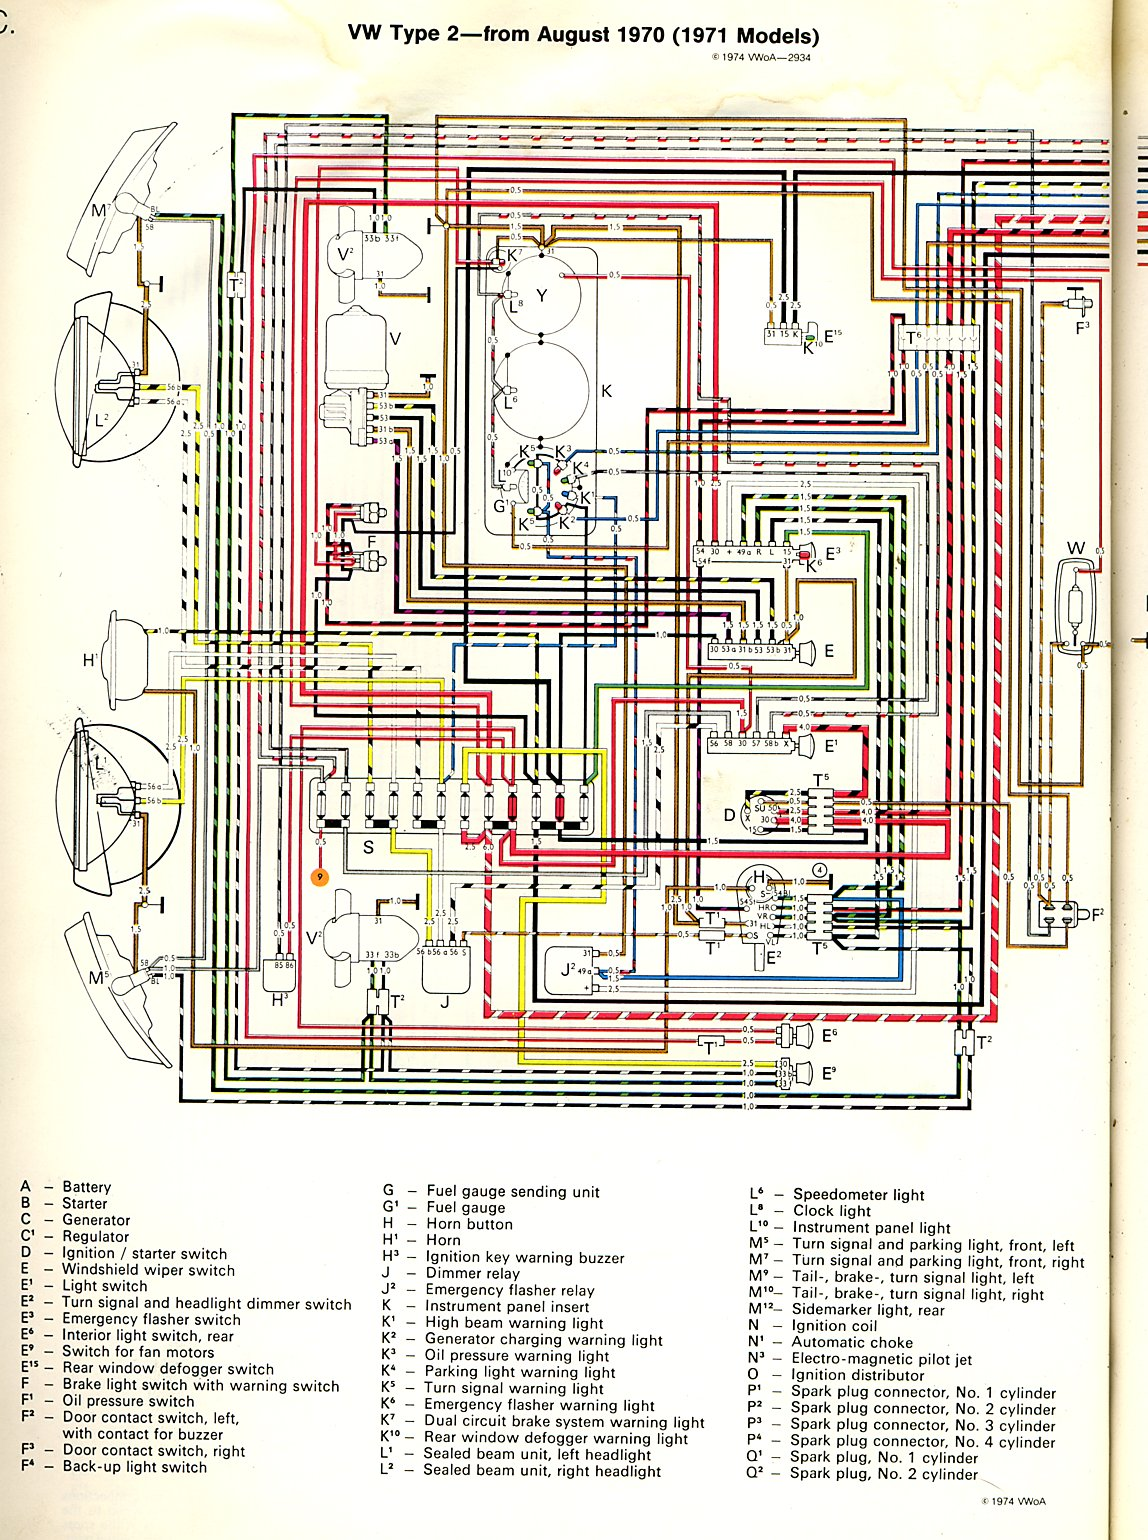 thesamba com type 2 wiring diagrams rh thesamba com 1971 vw bus wiring diagram 1965 VW Wiring Diagram